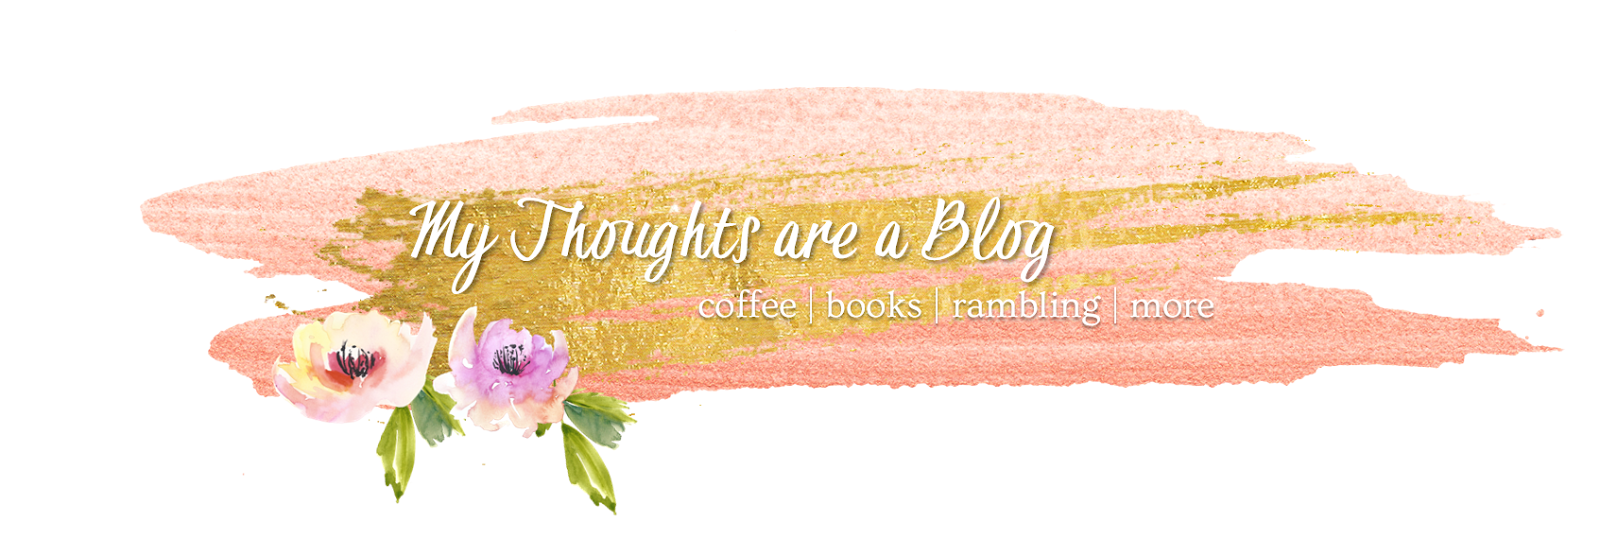 My Thoughts are a Blog